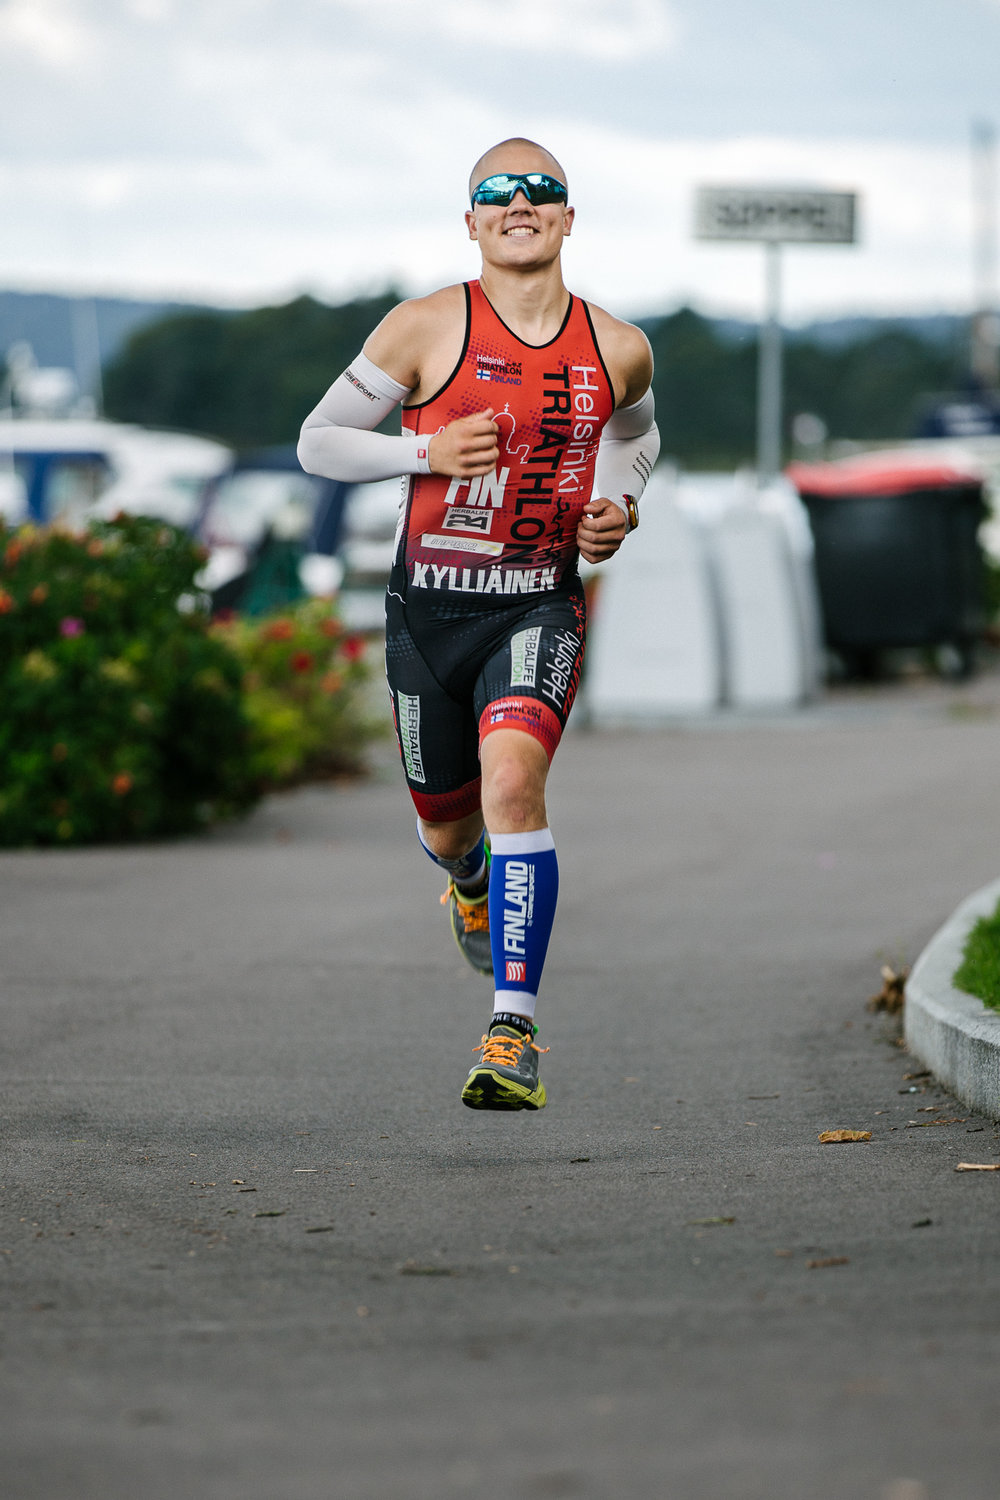 Triathlon athlete Mitja Kylliainen from Finland.